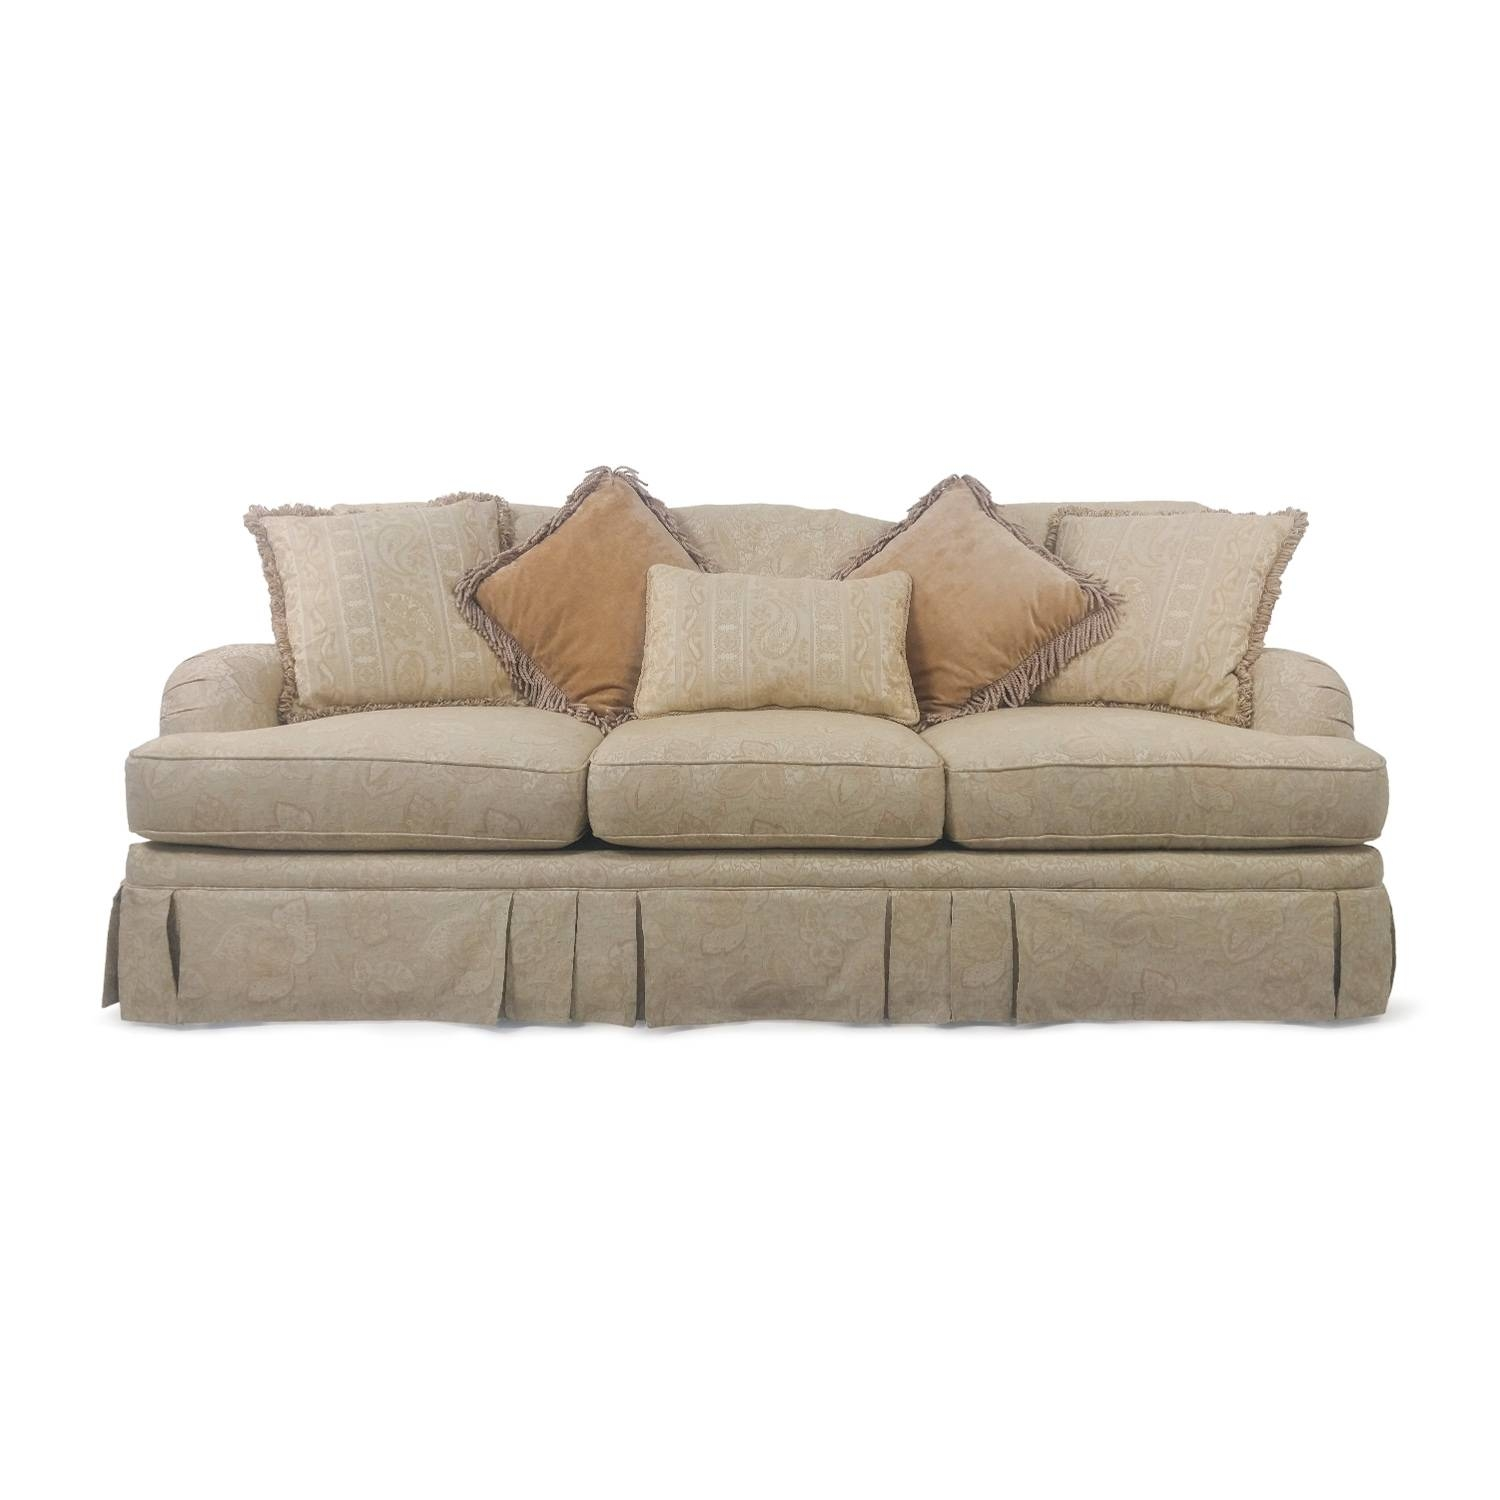 32% Off - West Elm West Elm Mid-Century Heathered Weave Sofa / Sofas with Classic Sofas for Sale (Image 4 of 30)